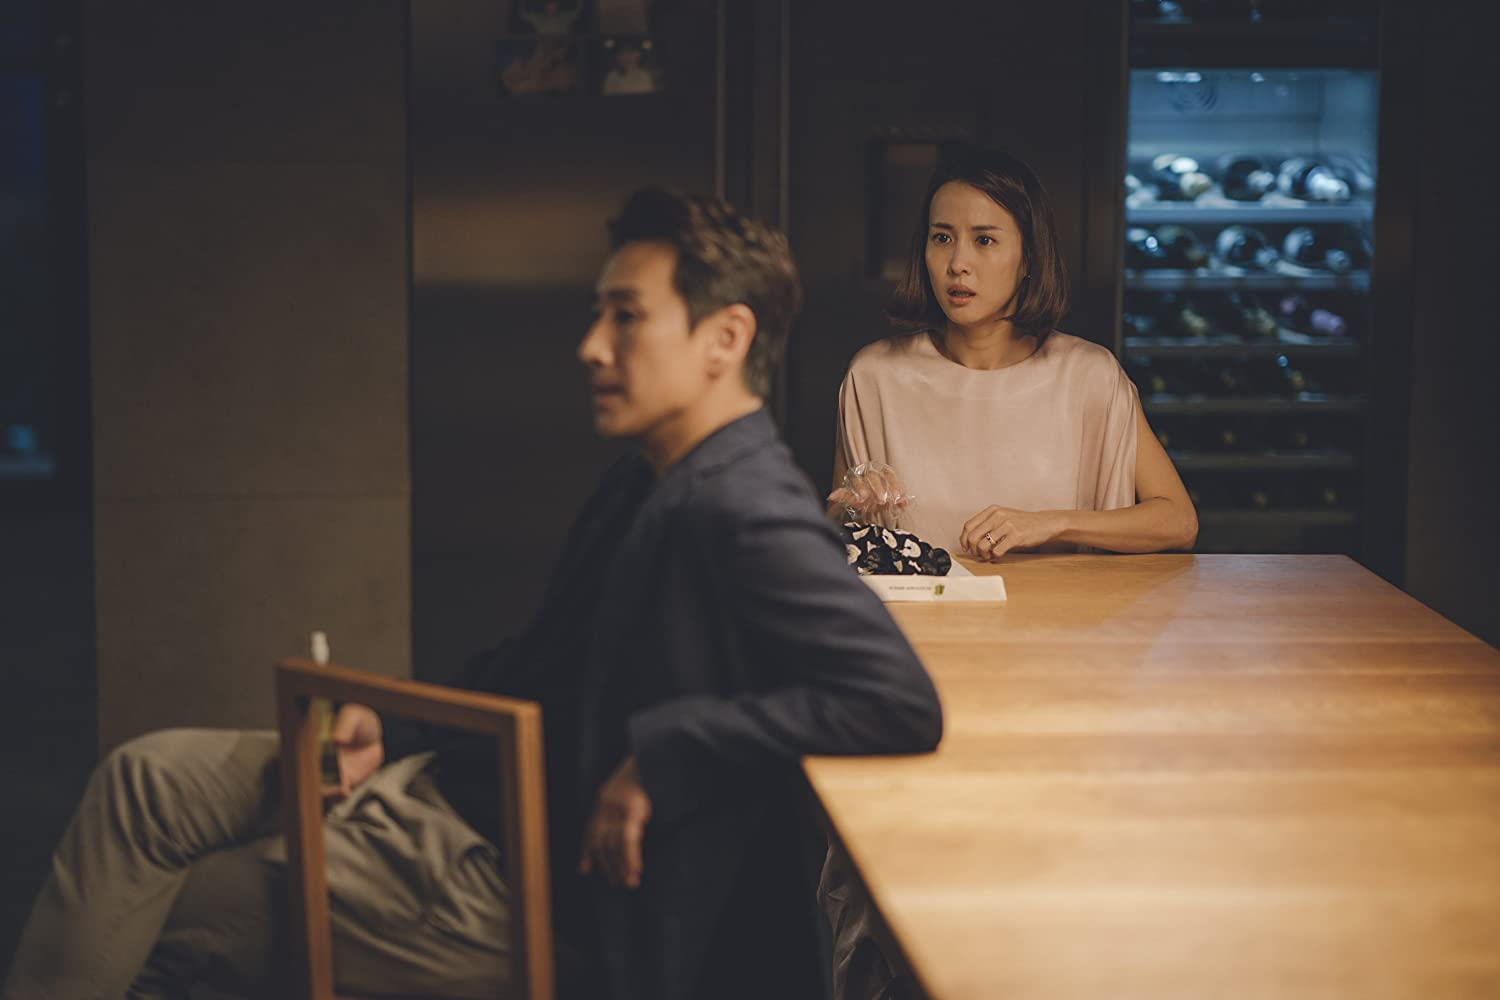 Sun-kyun Lee and Yeo-jeong Jo in Gisaengchung (2019)